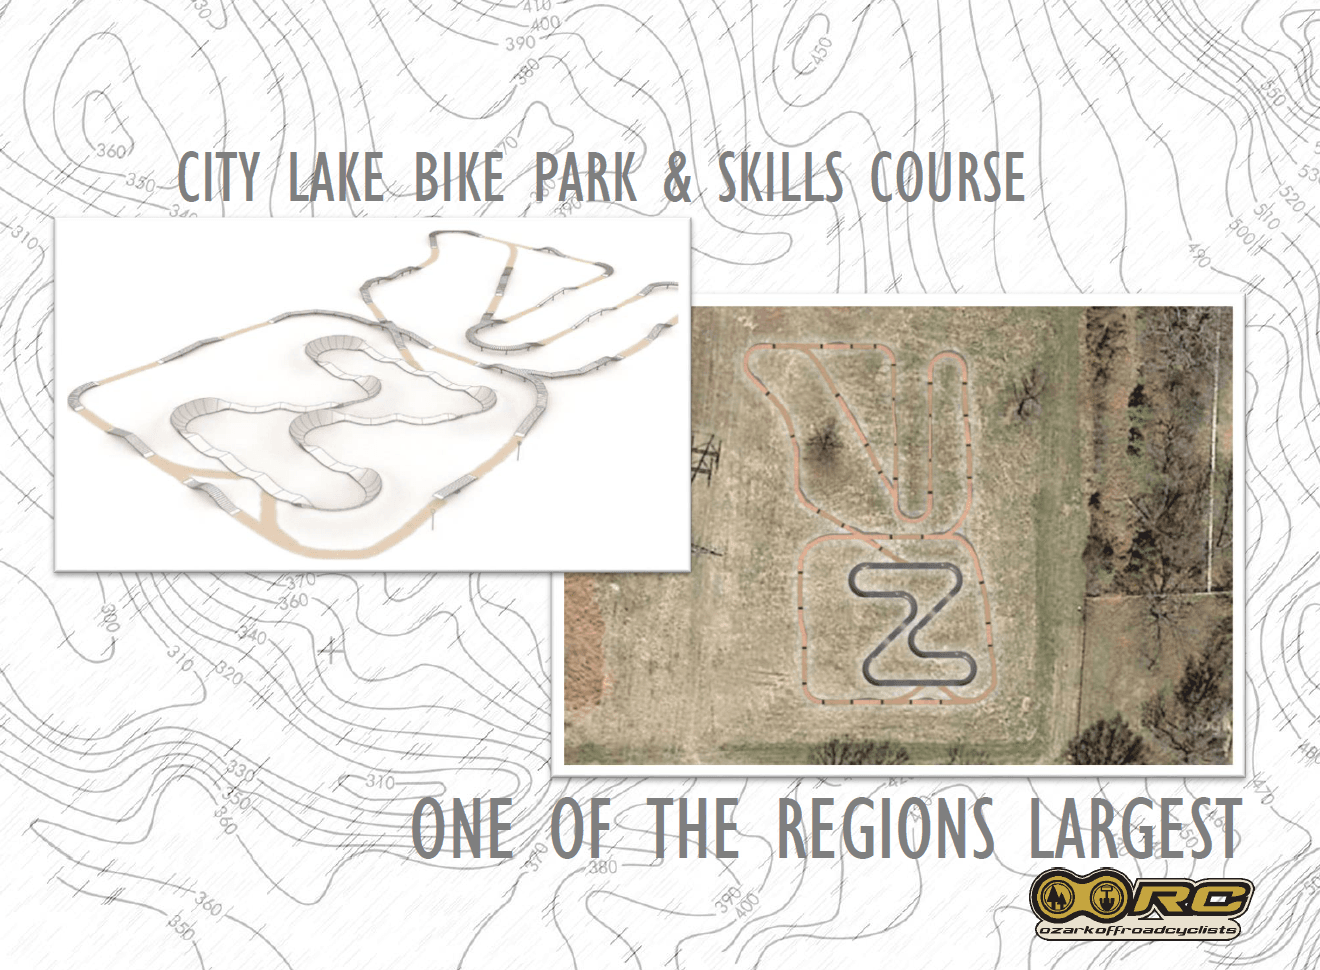 City Lake bike park and skills course